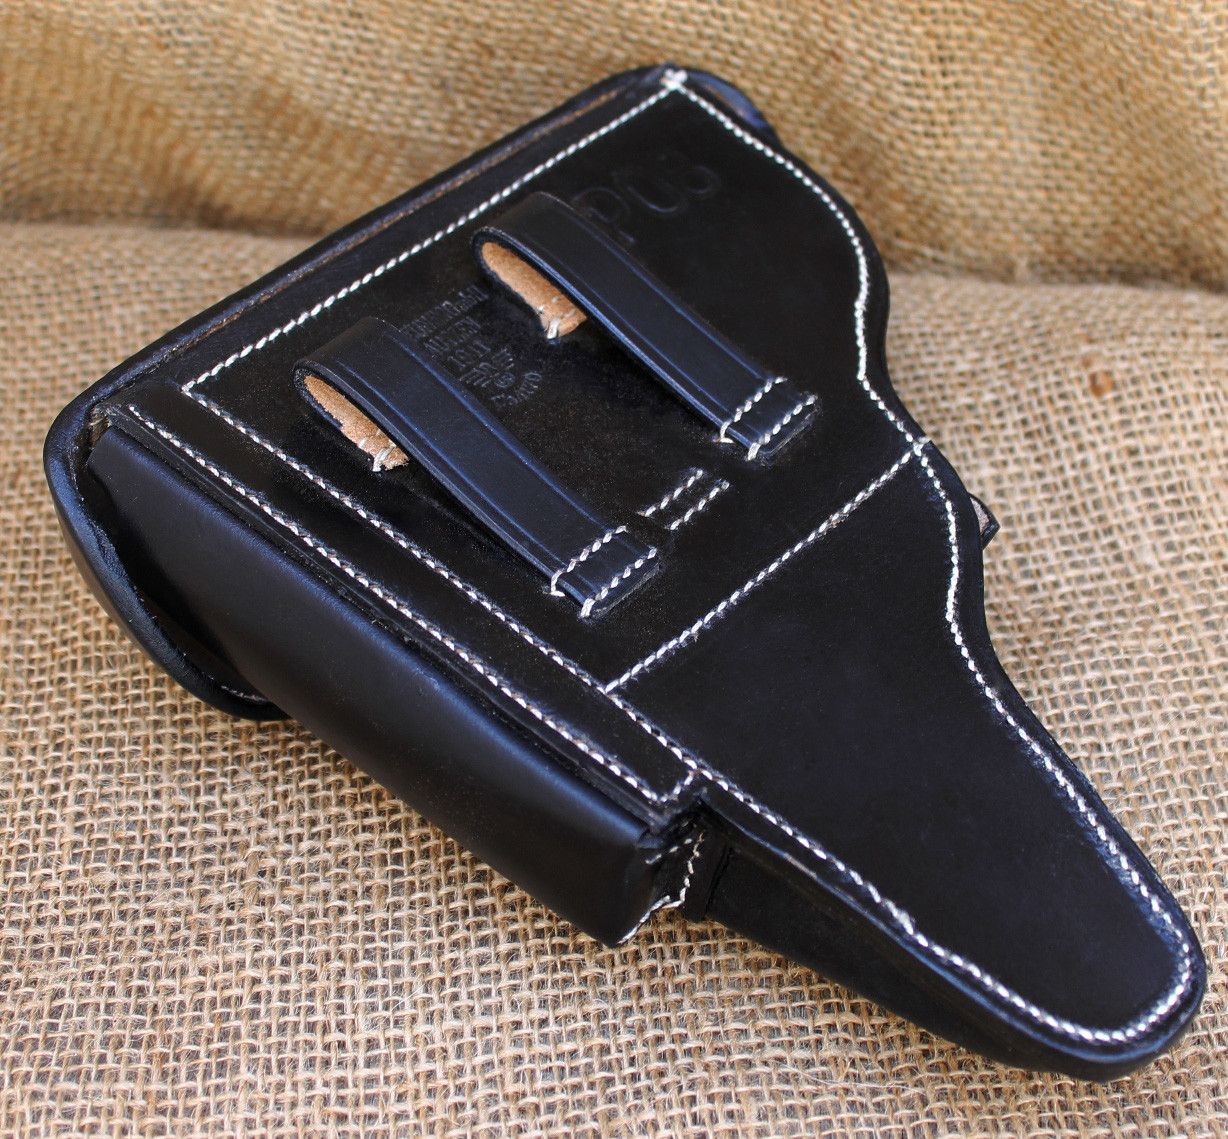 P08 Luger Pistol Reproduction Holster (Leather)